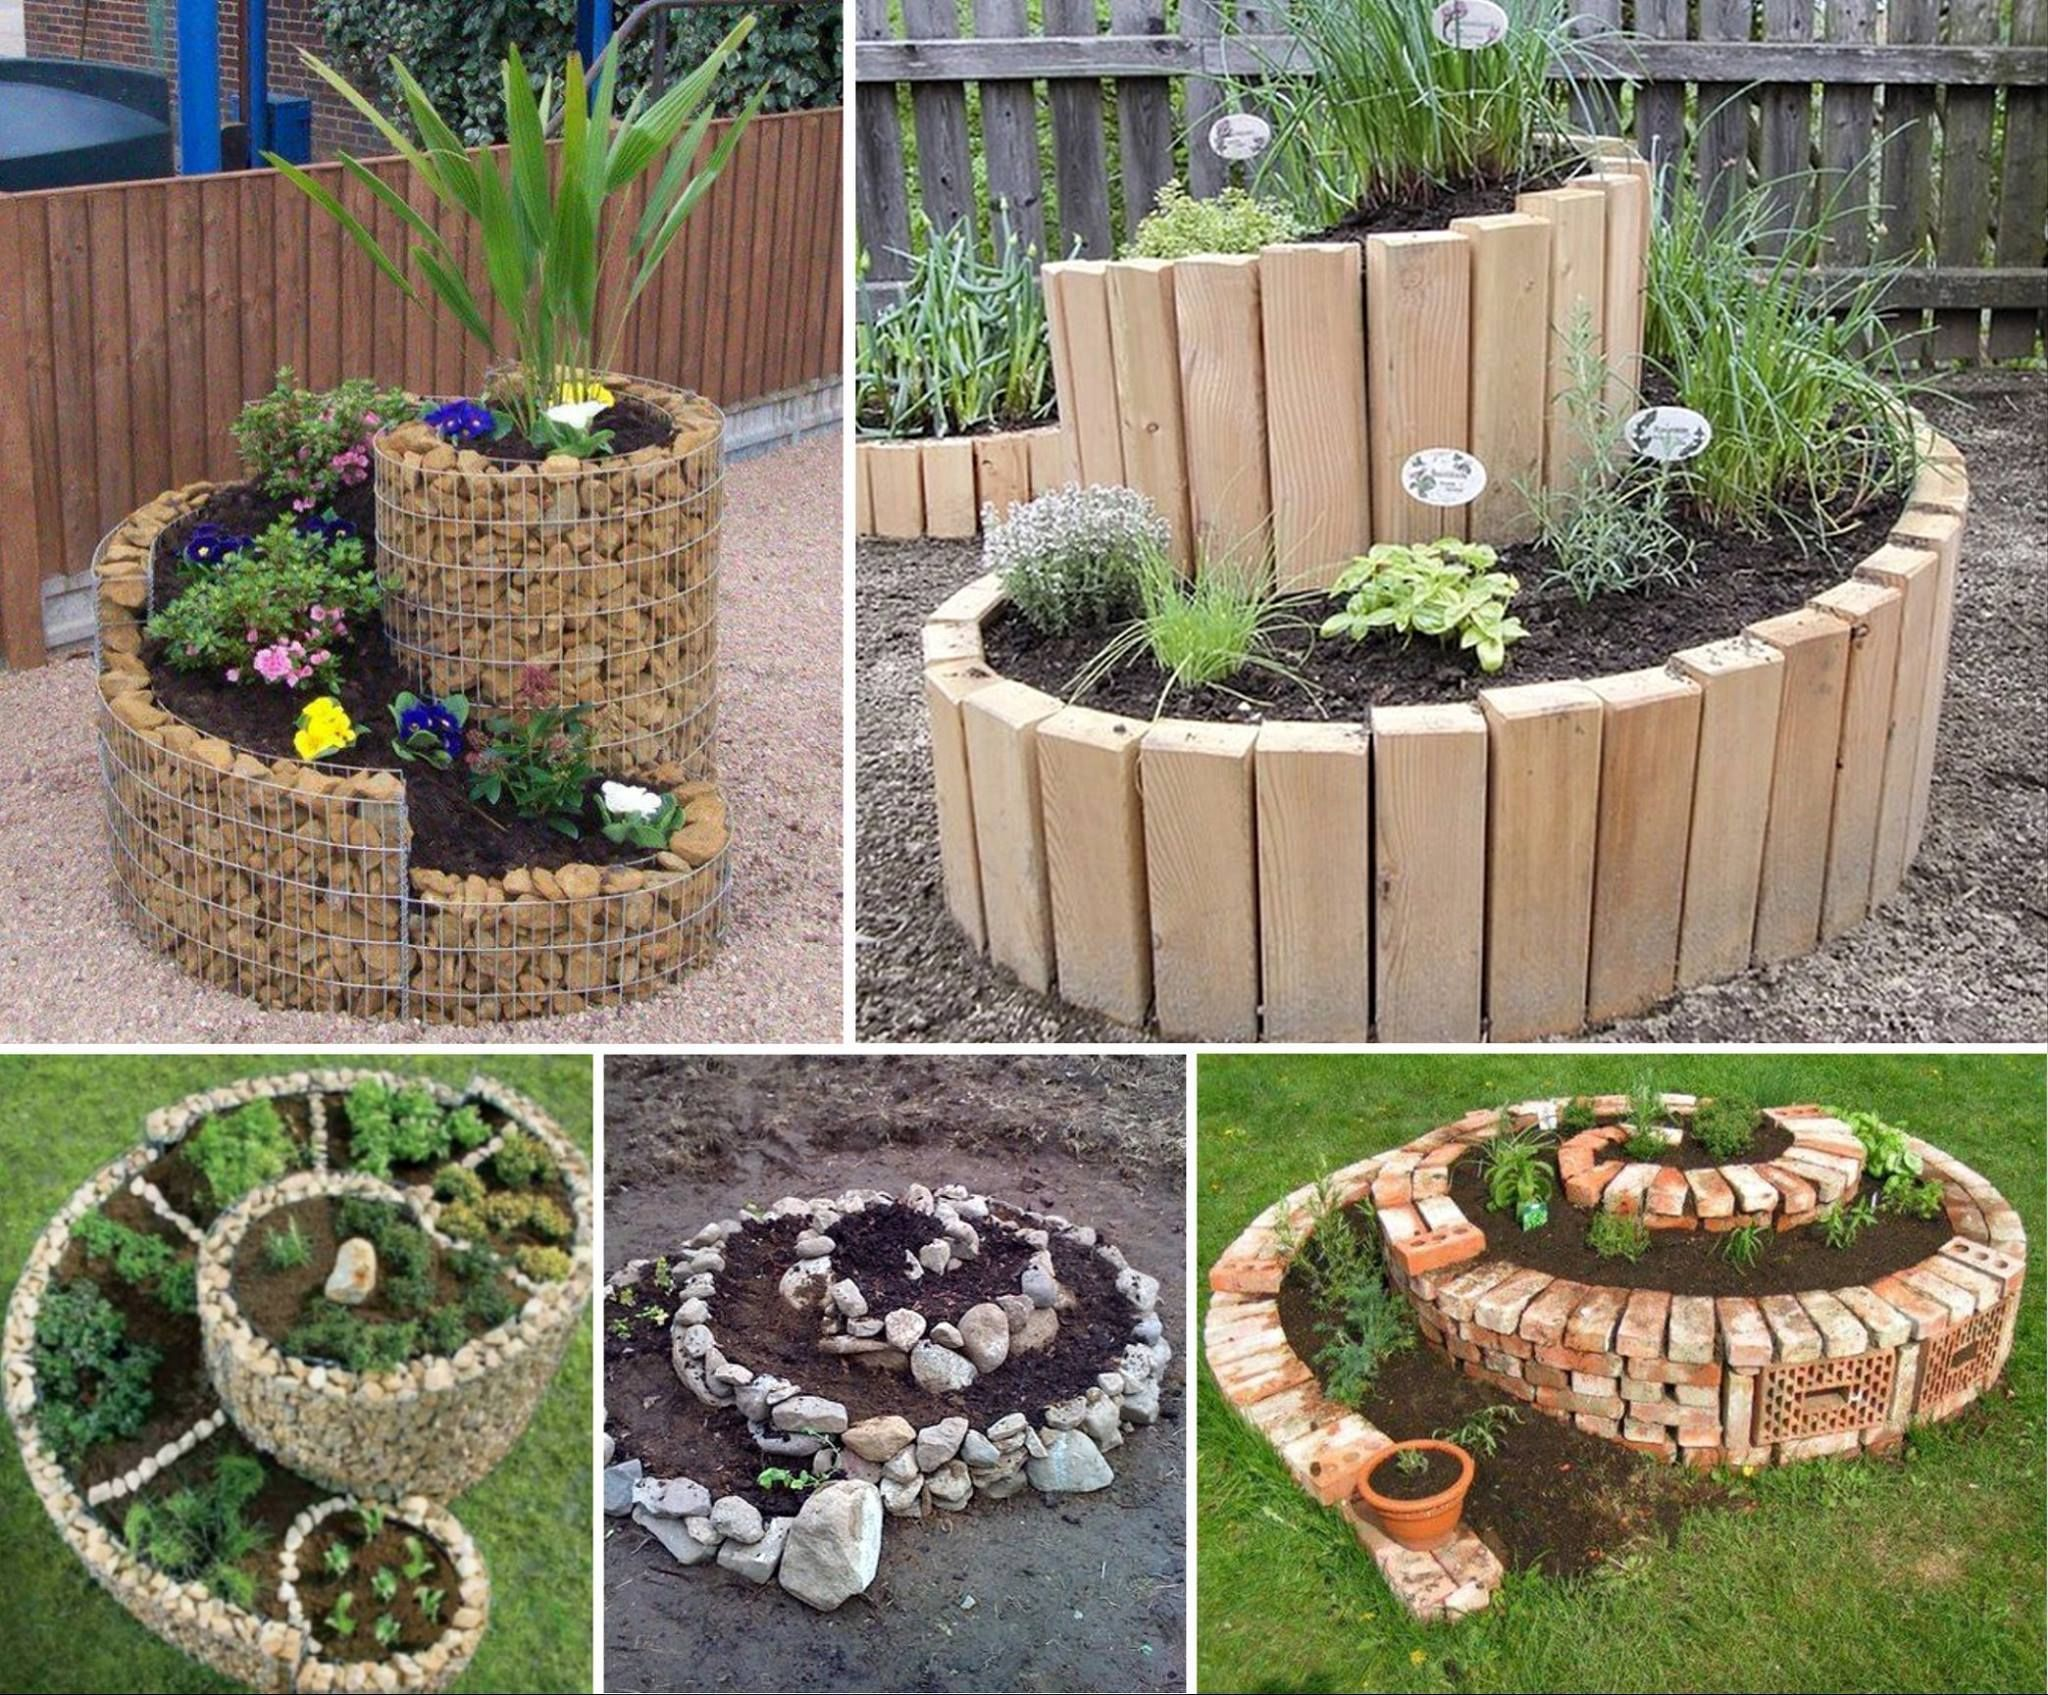 diy spiral herb gardens pictures, photos, and images for facebook